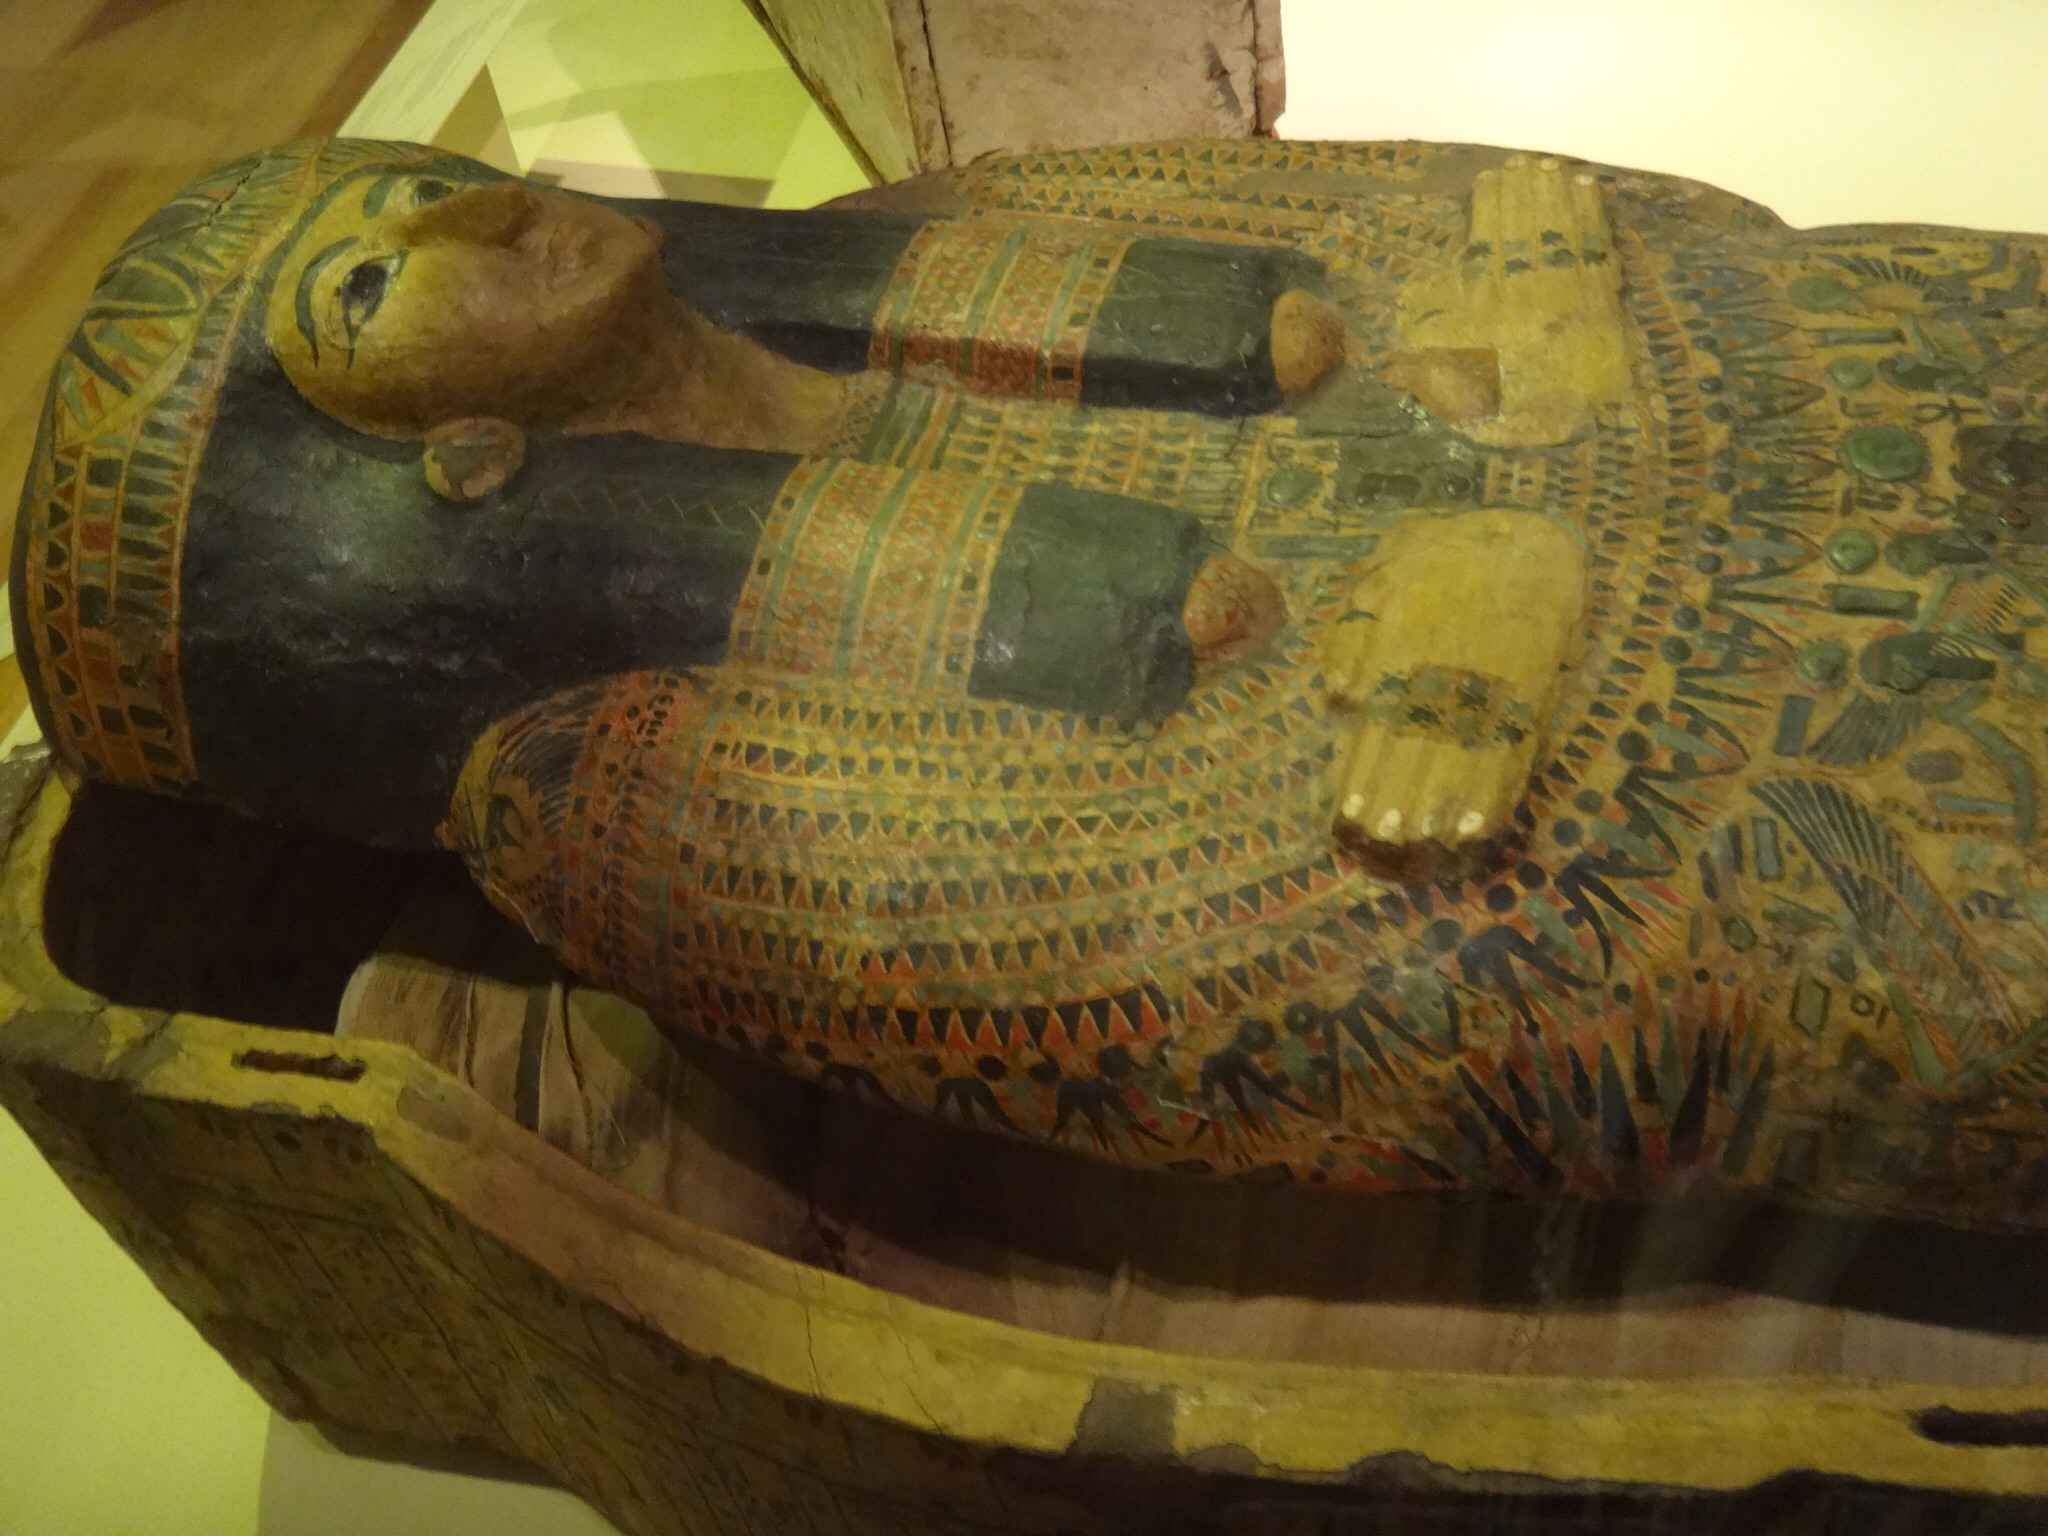 Egyptian sarcophagus with cloth wrapped mummy inside